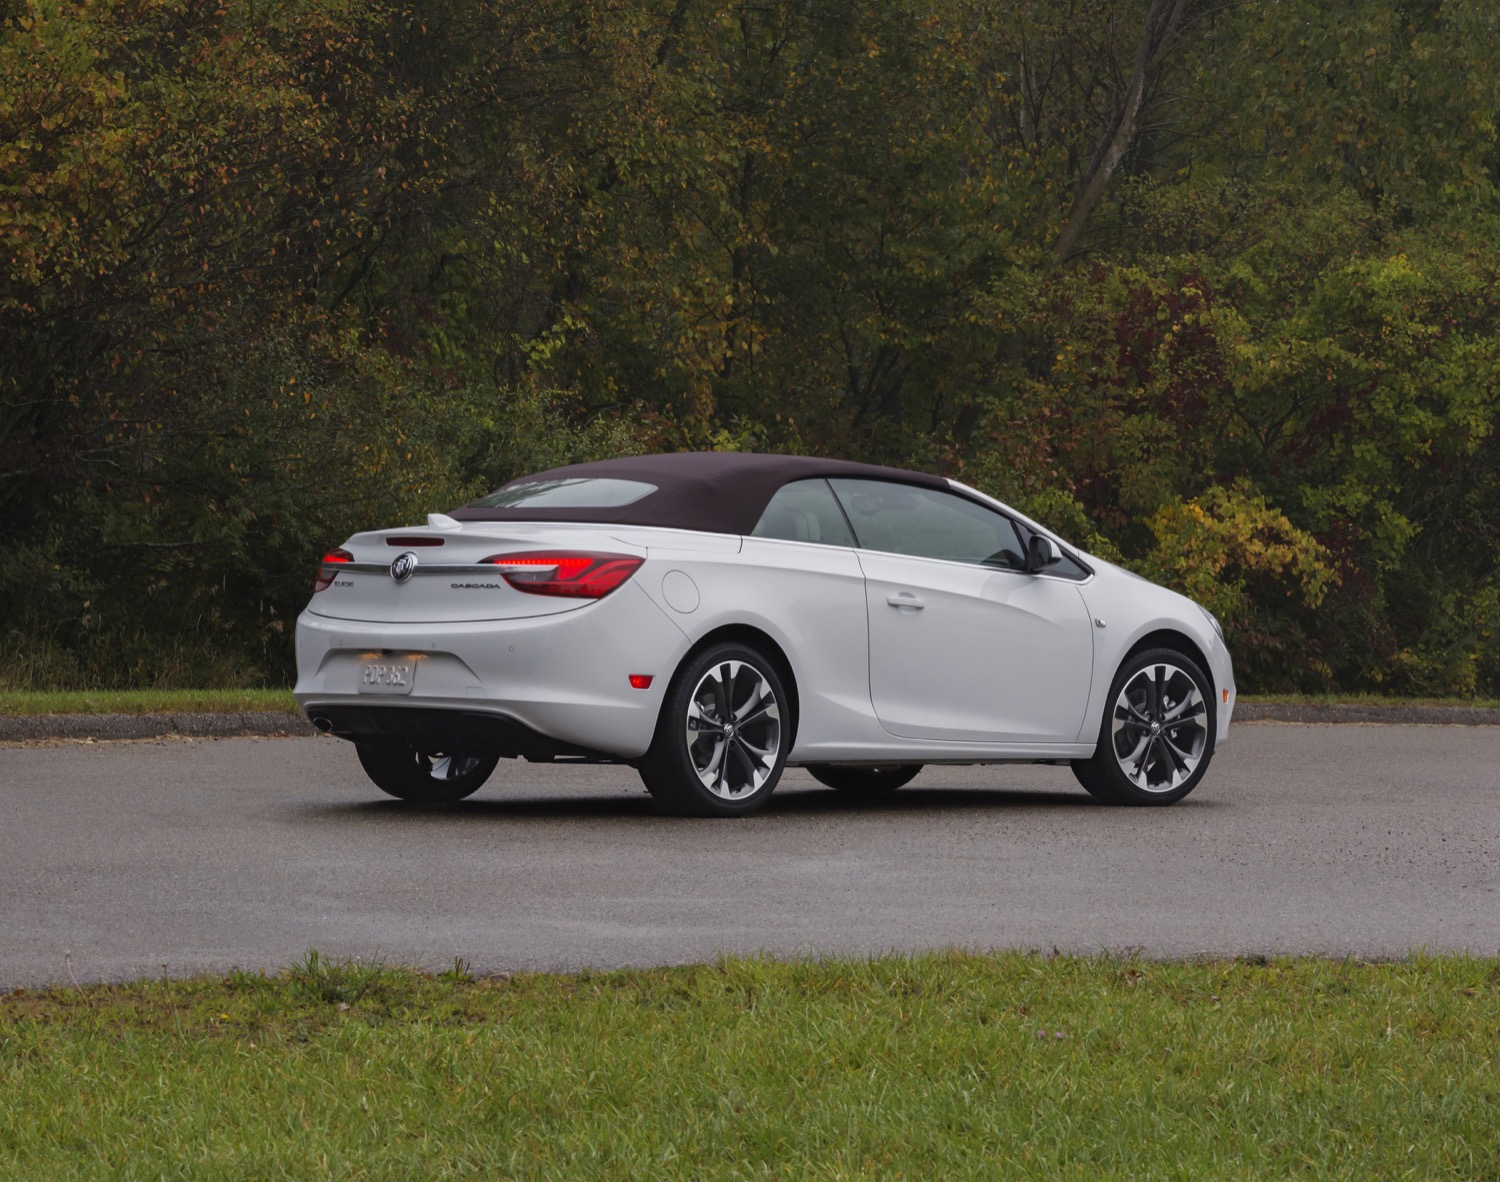 2018 Buick Cascada Gets New Colors And Tops | Gm Authority 2022 Buick Cascada Oil Type, Options, Reviews